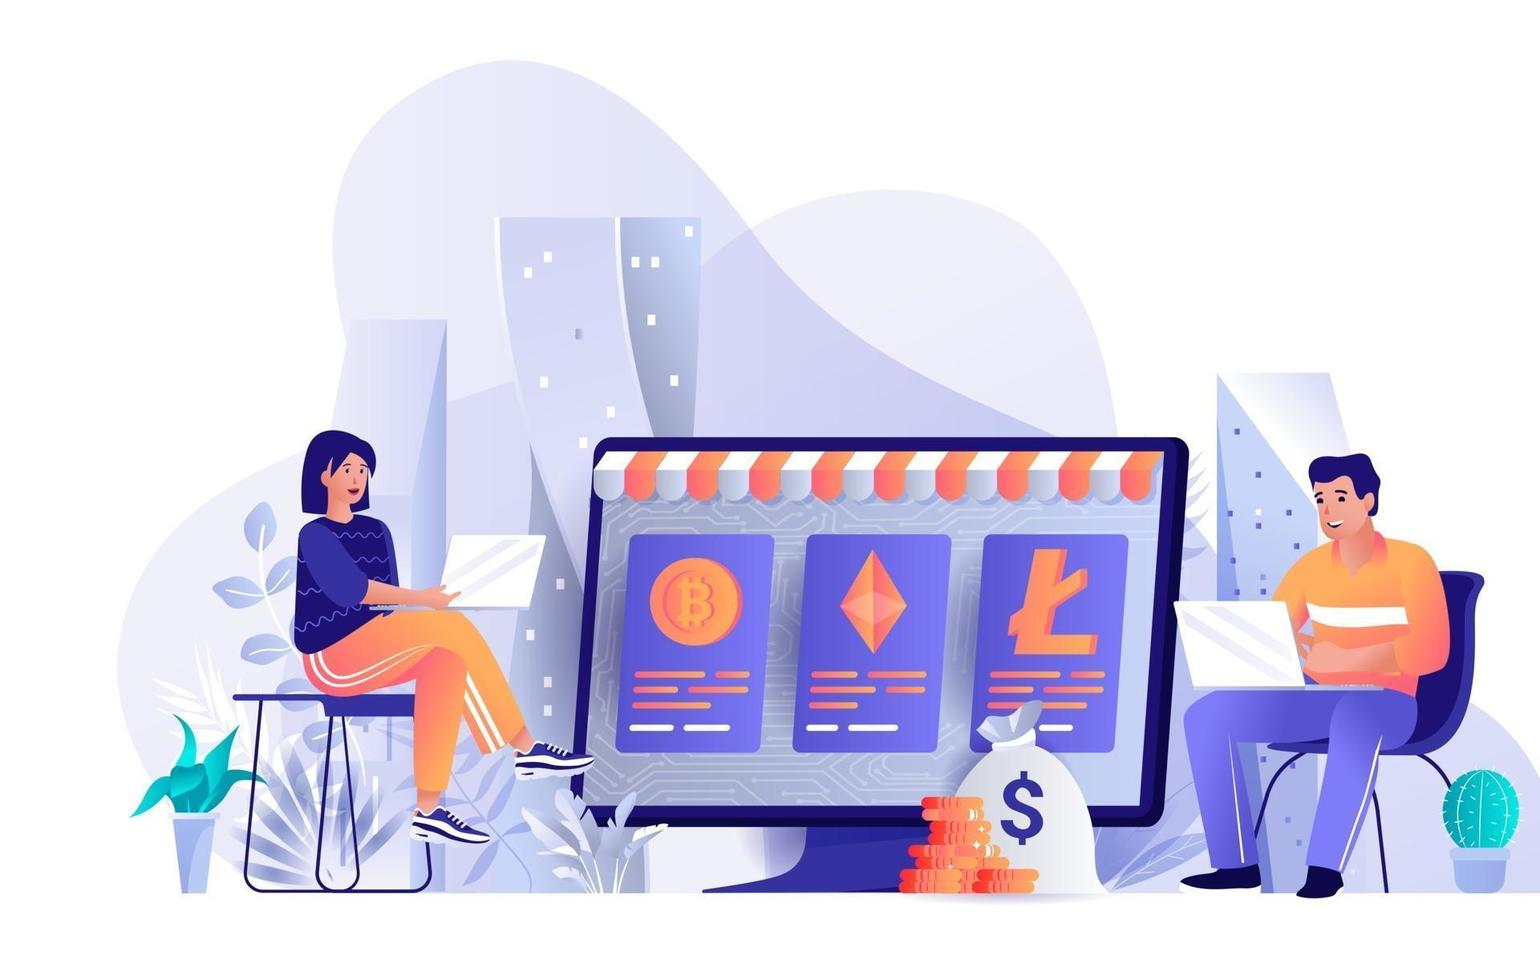 Cryptocurrency marketplace concept in flat design vector